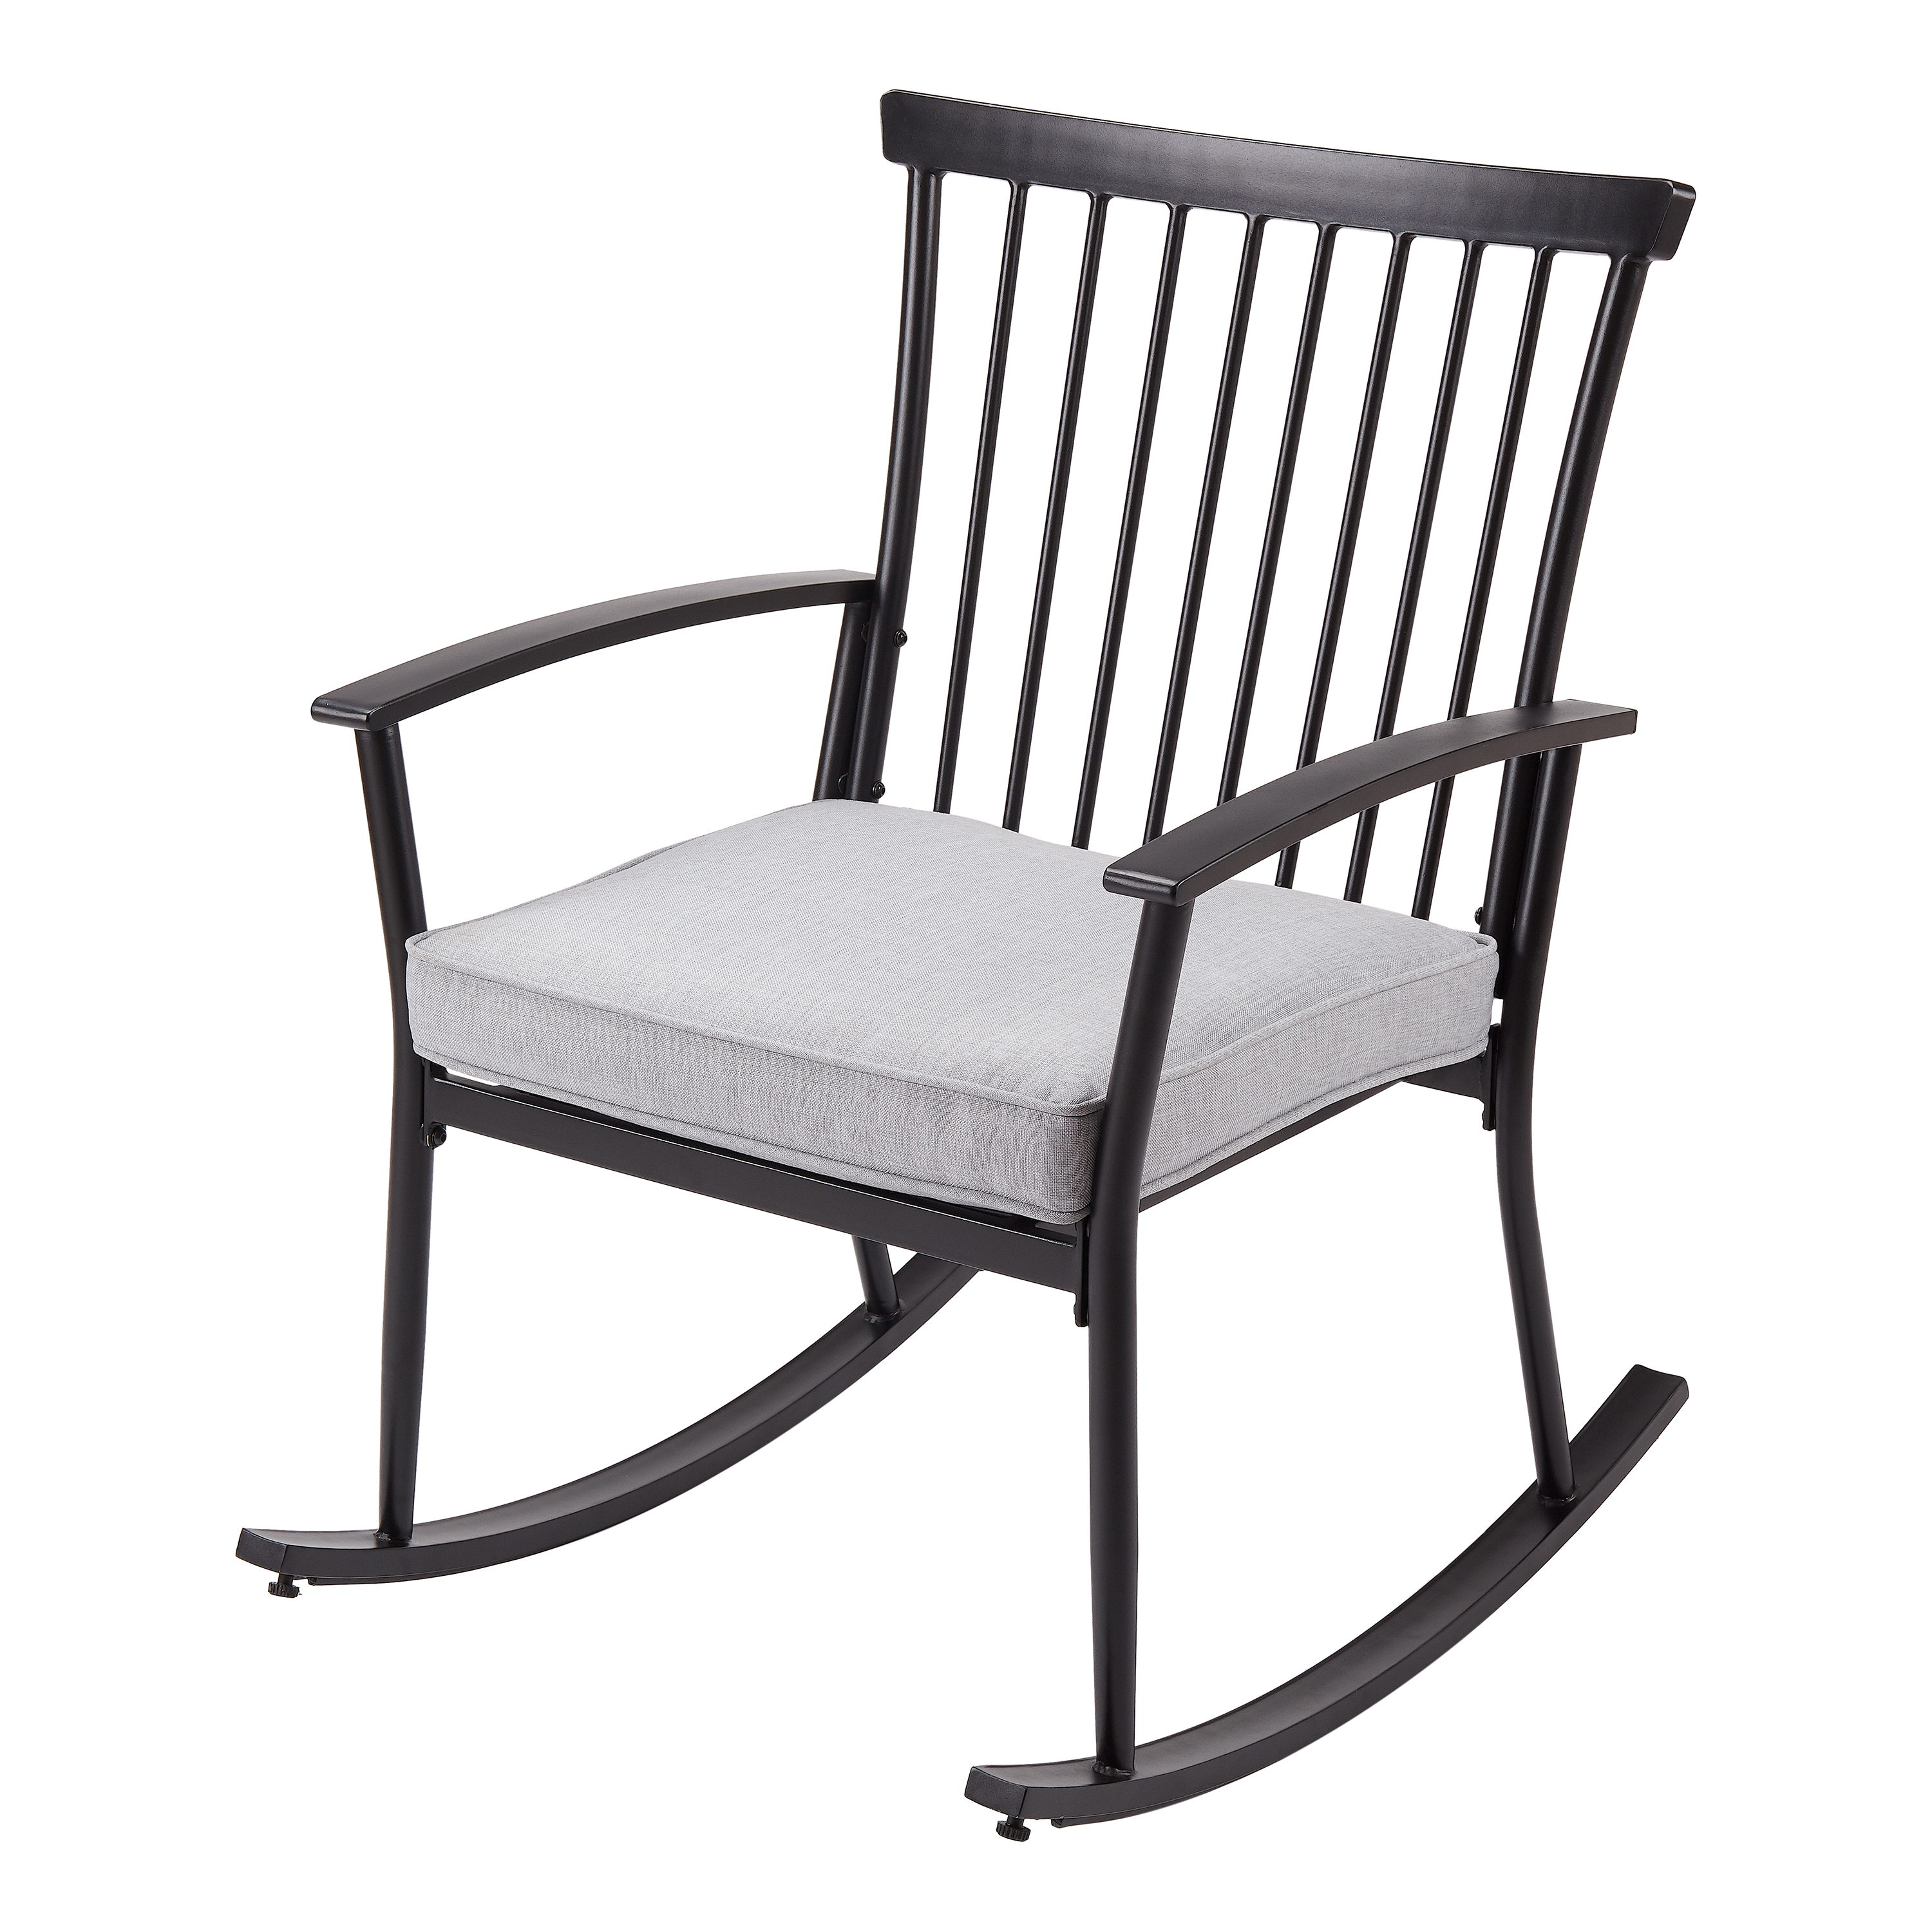 Better Homes & Gardens Shaker Patio Rocking Chair in Black with Gray Cushion